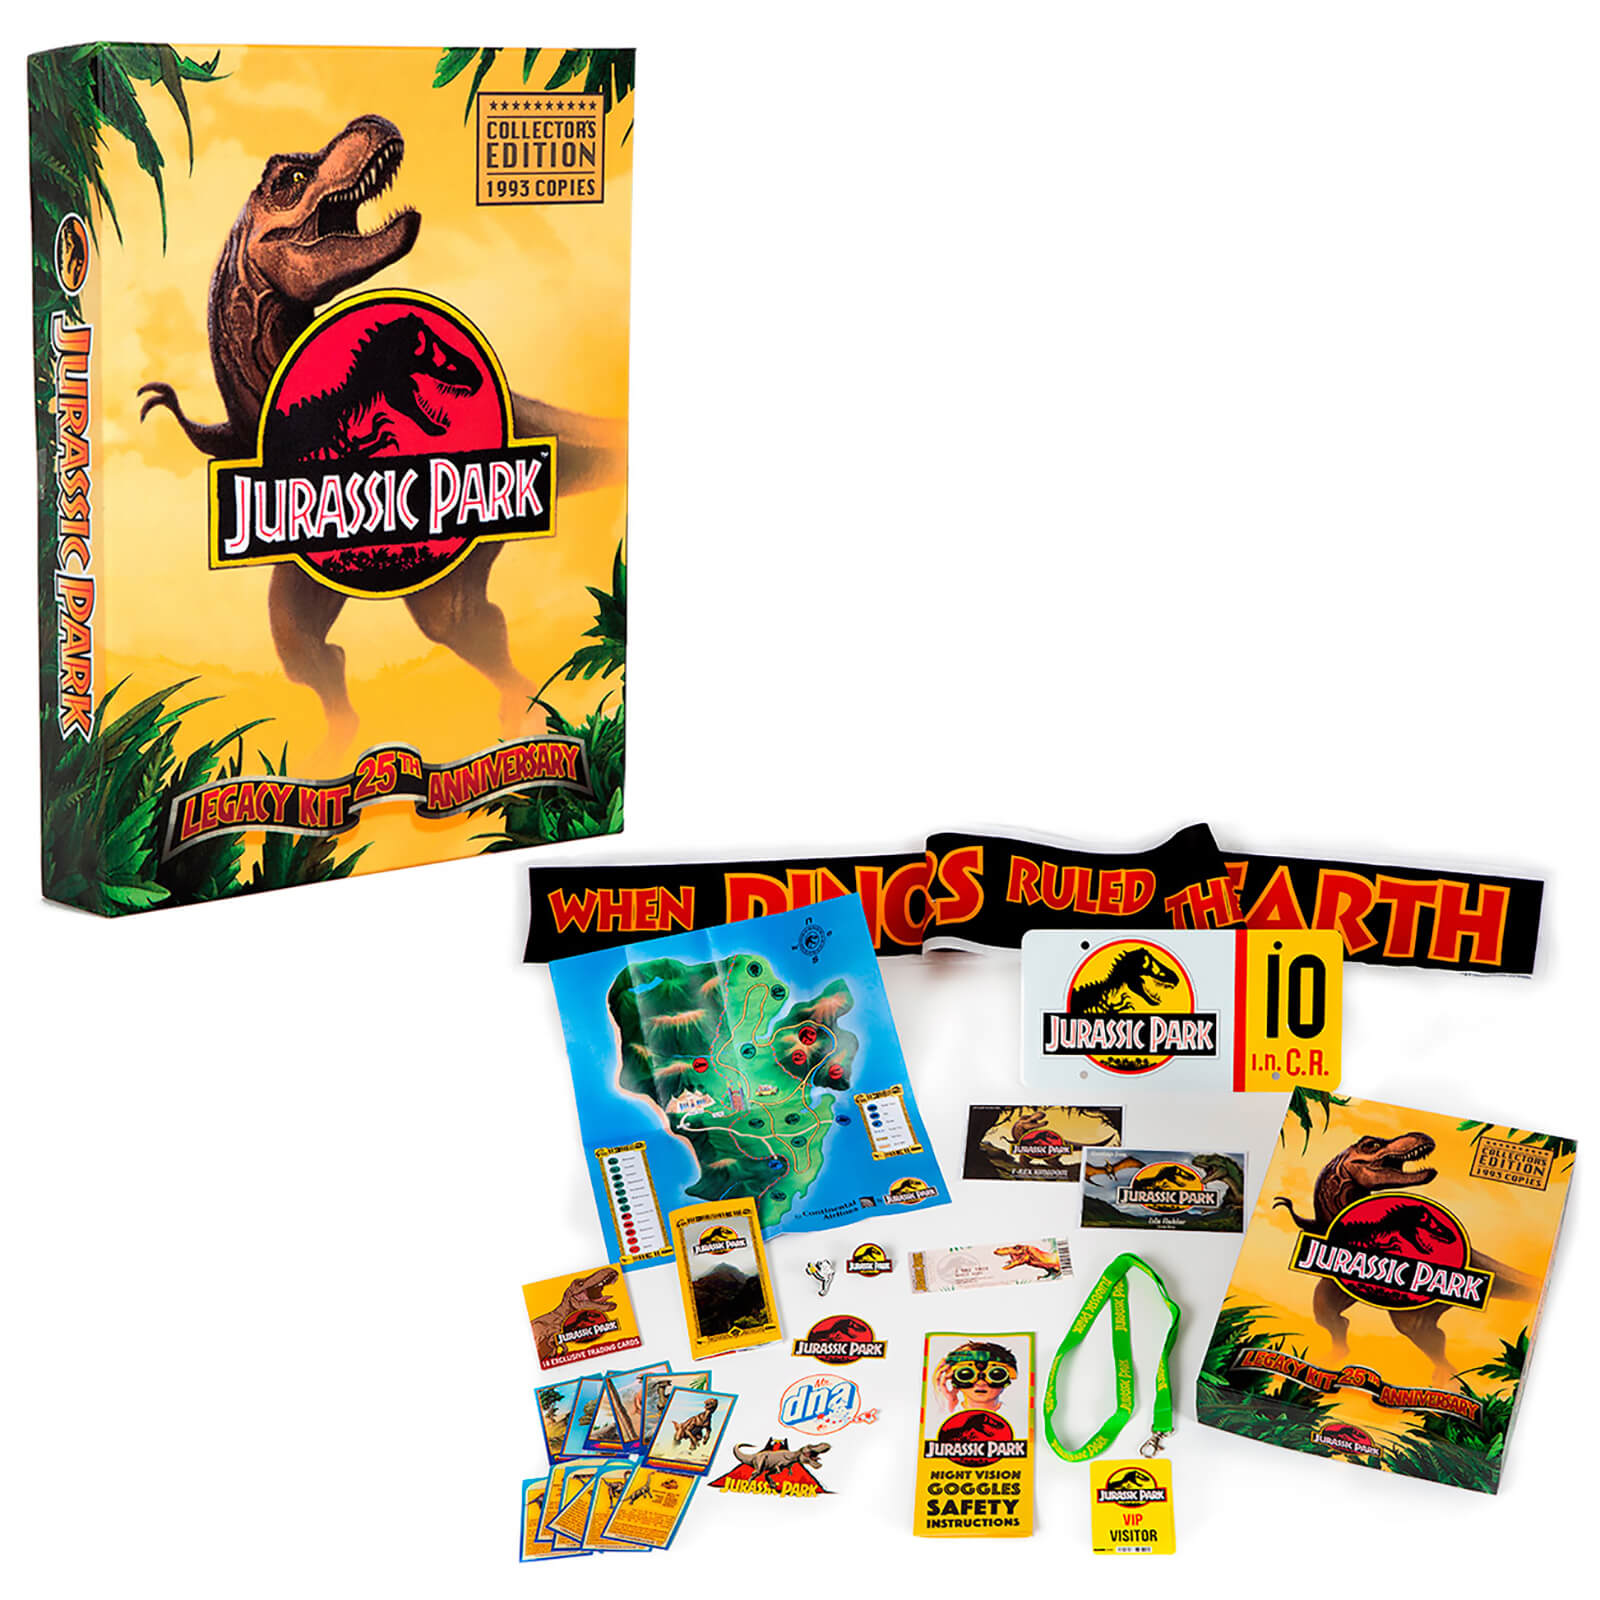 1993 worldwide Jurassic Park Legacy Kit Gadgets Gift Box Set Edition Limited n